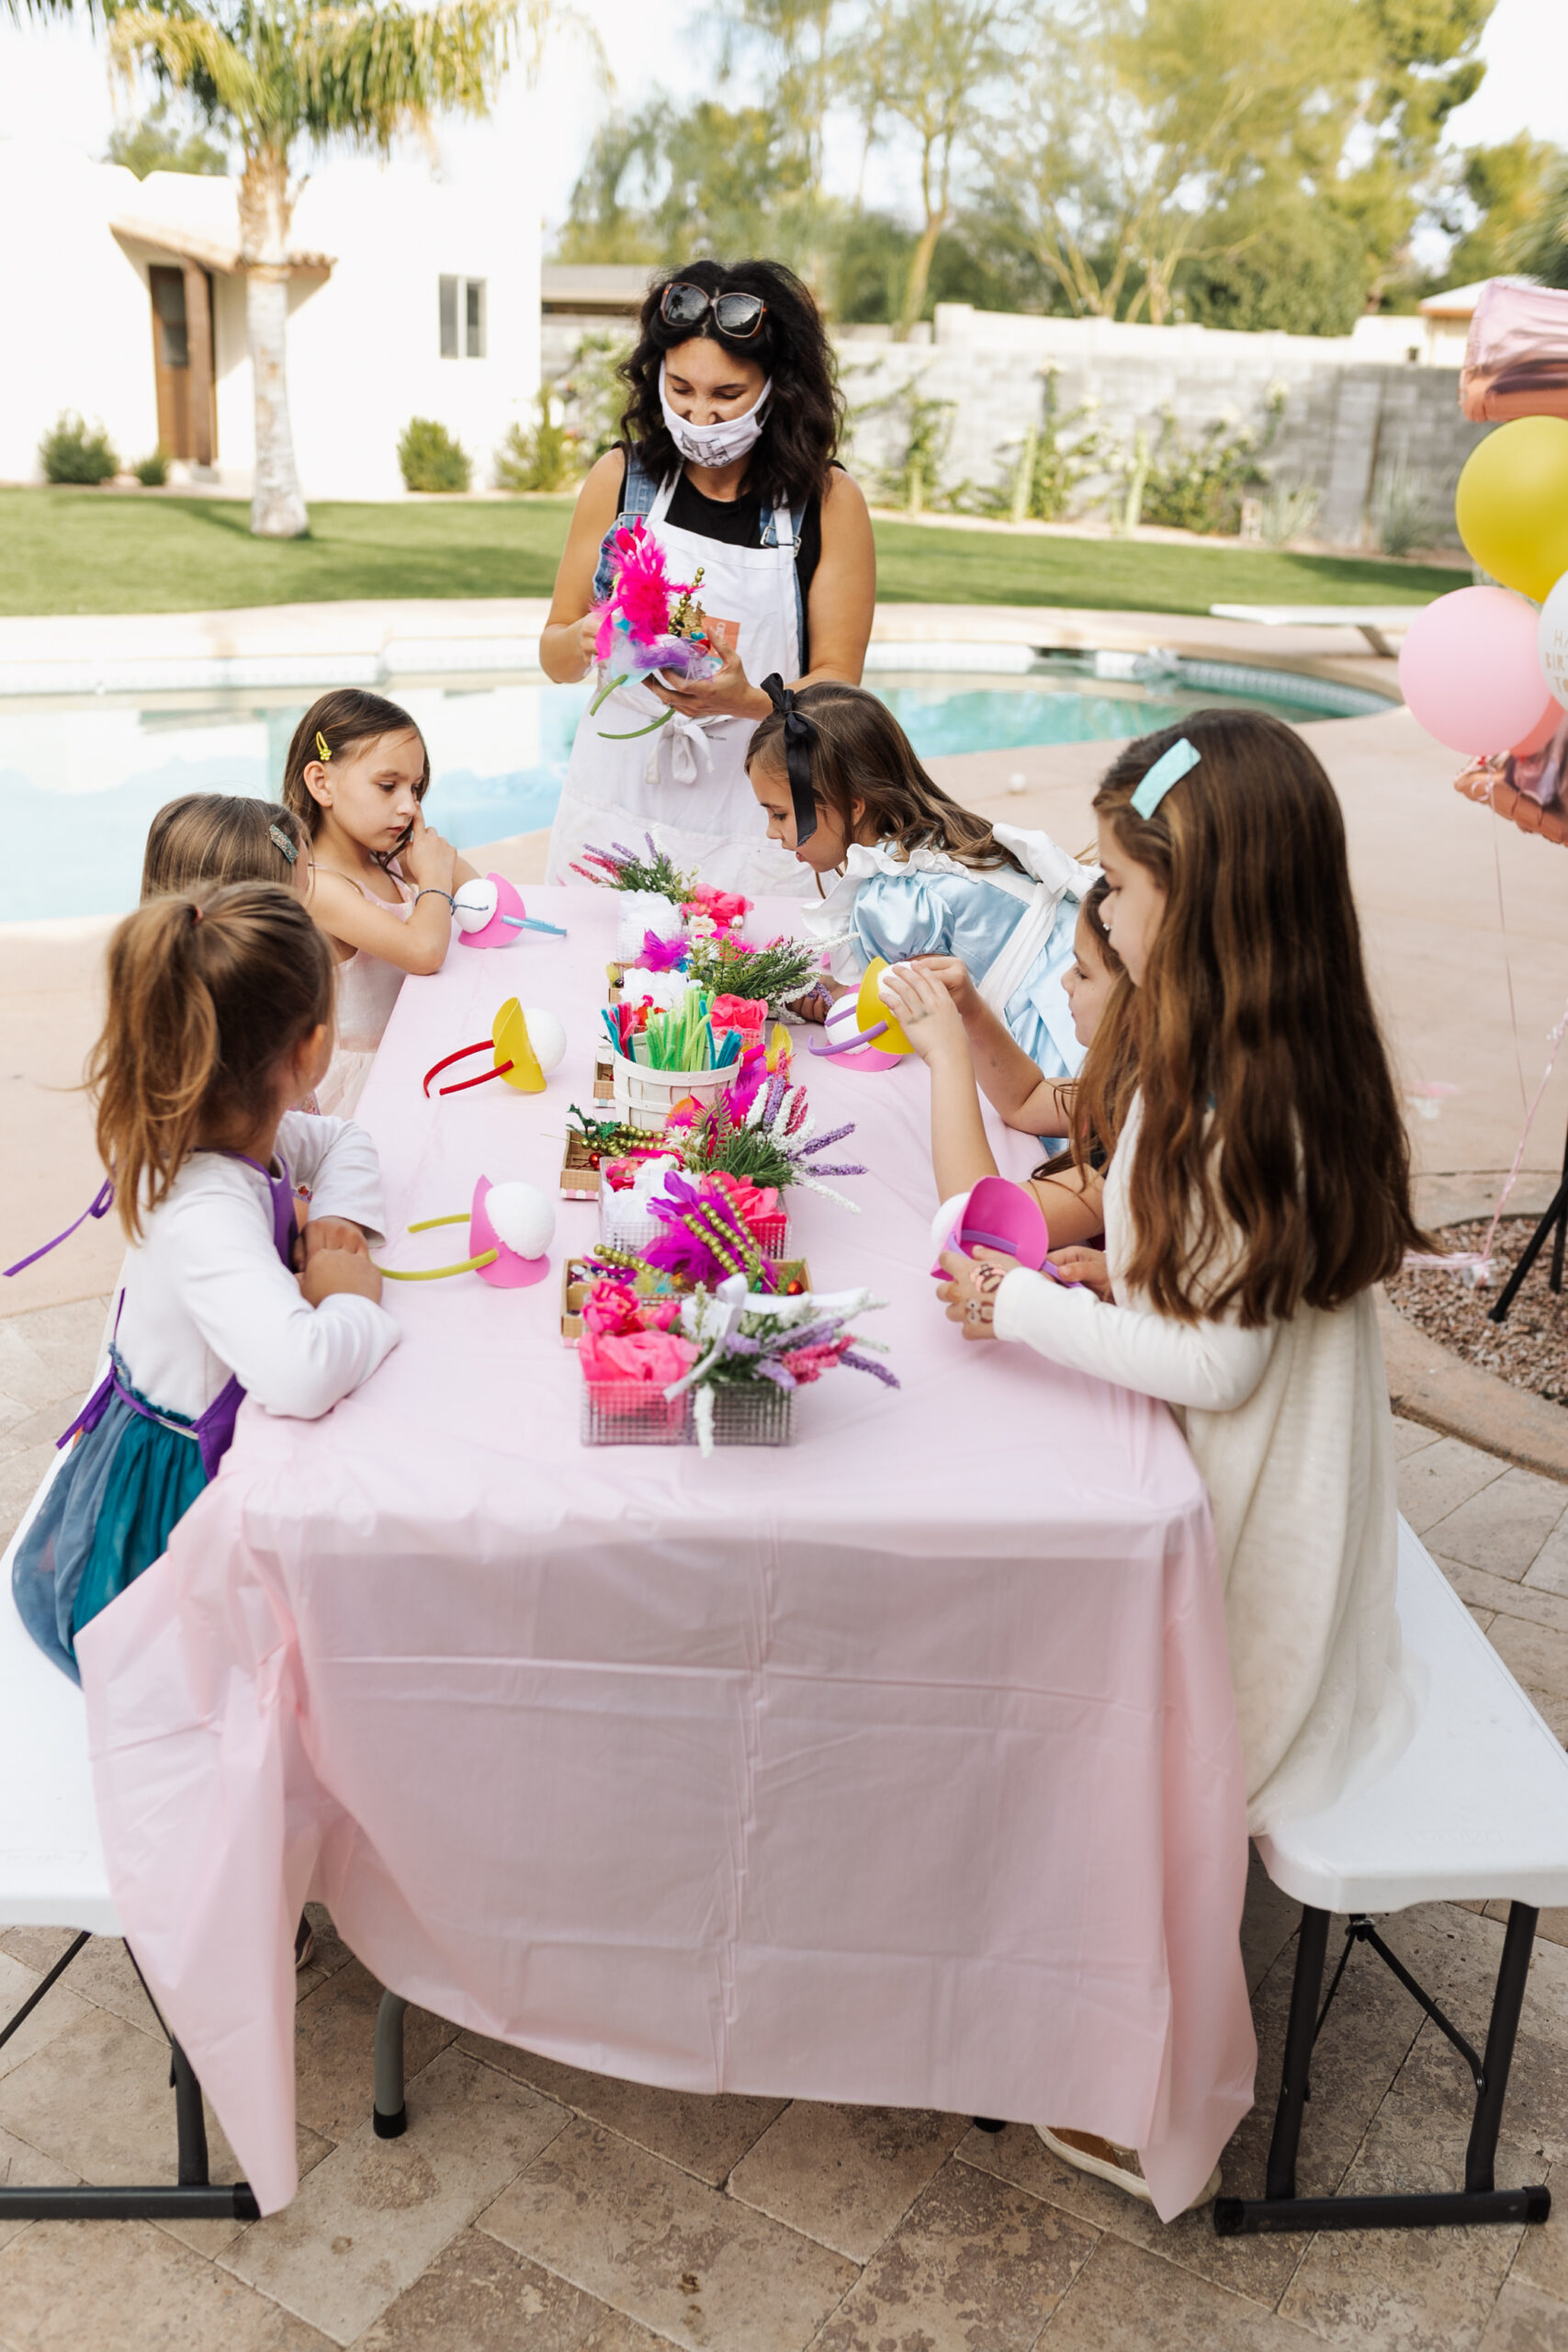 masterpiece art parties with a mad hatter craft for the girls! #thelovedesignedlife #masterpieceartparties #madhatterteaparty